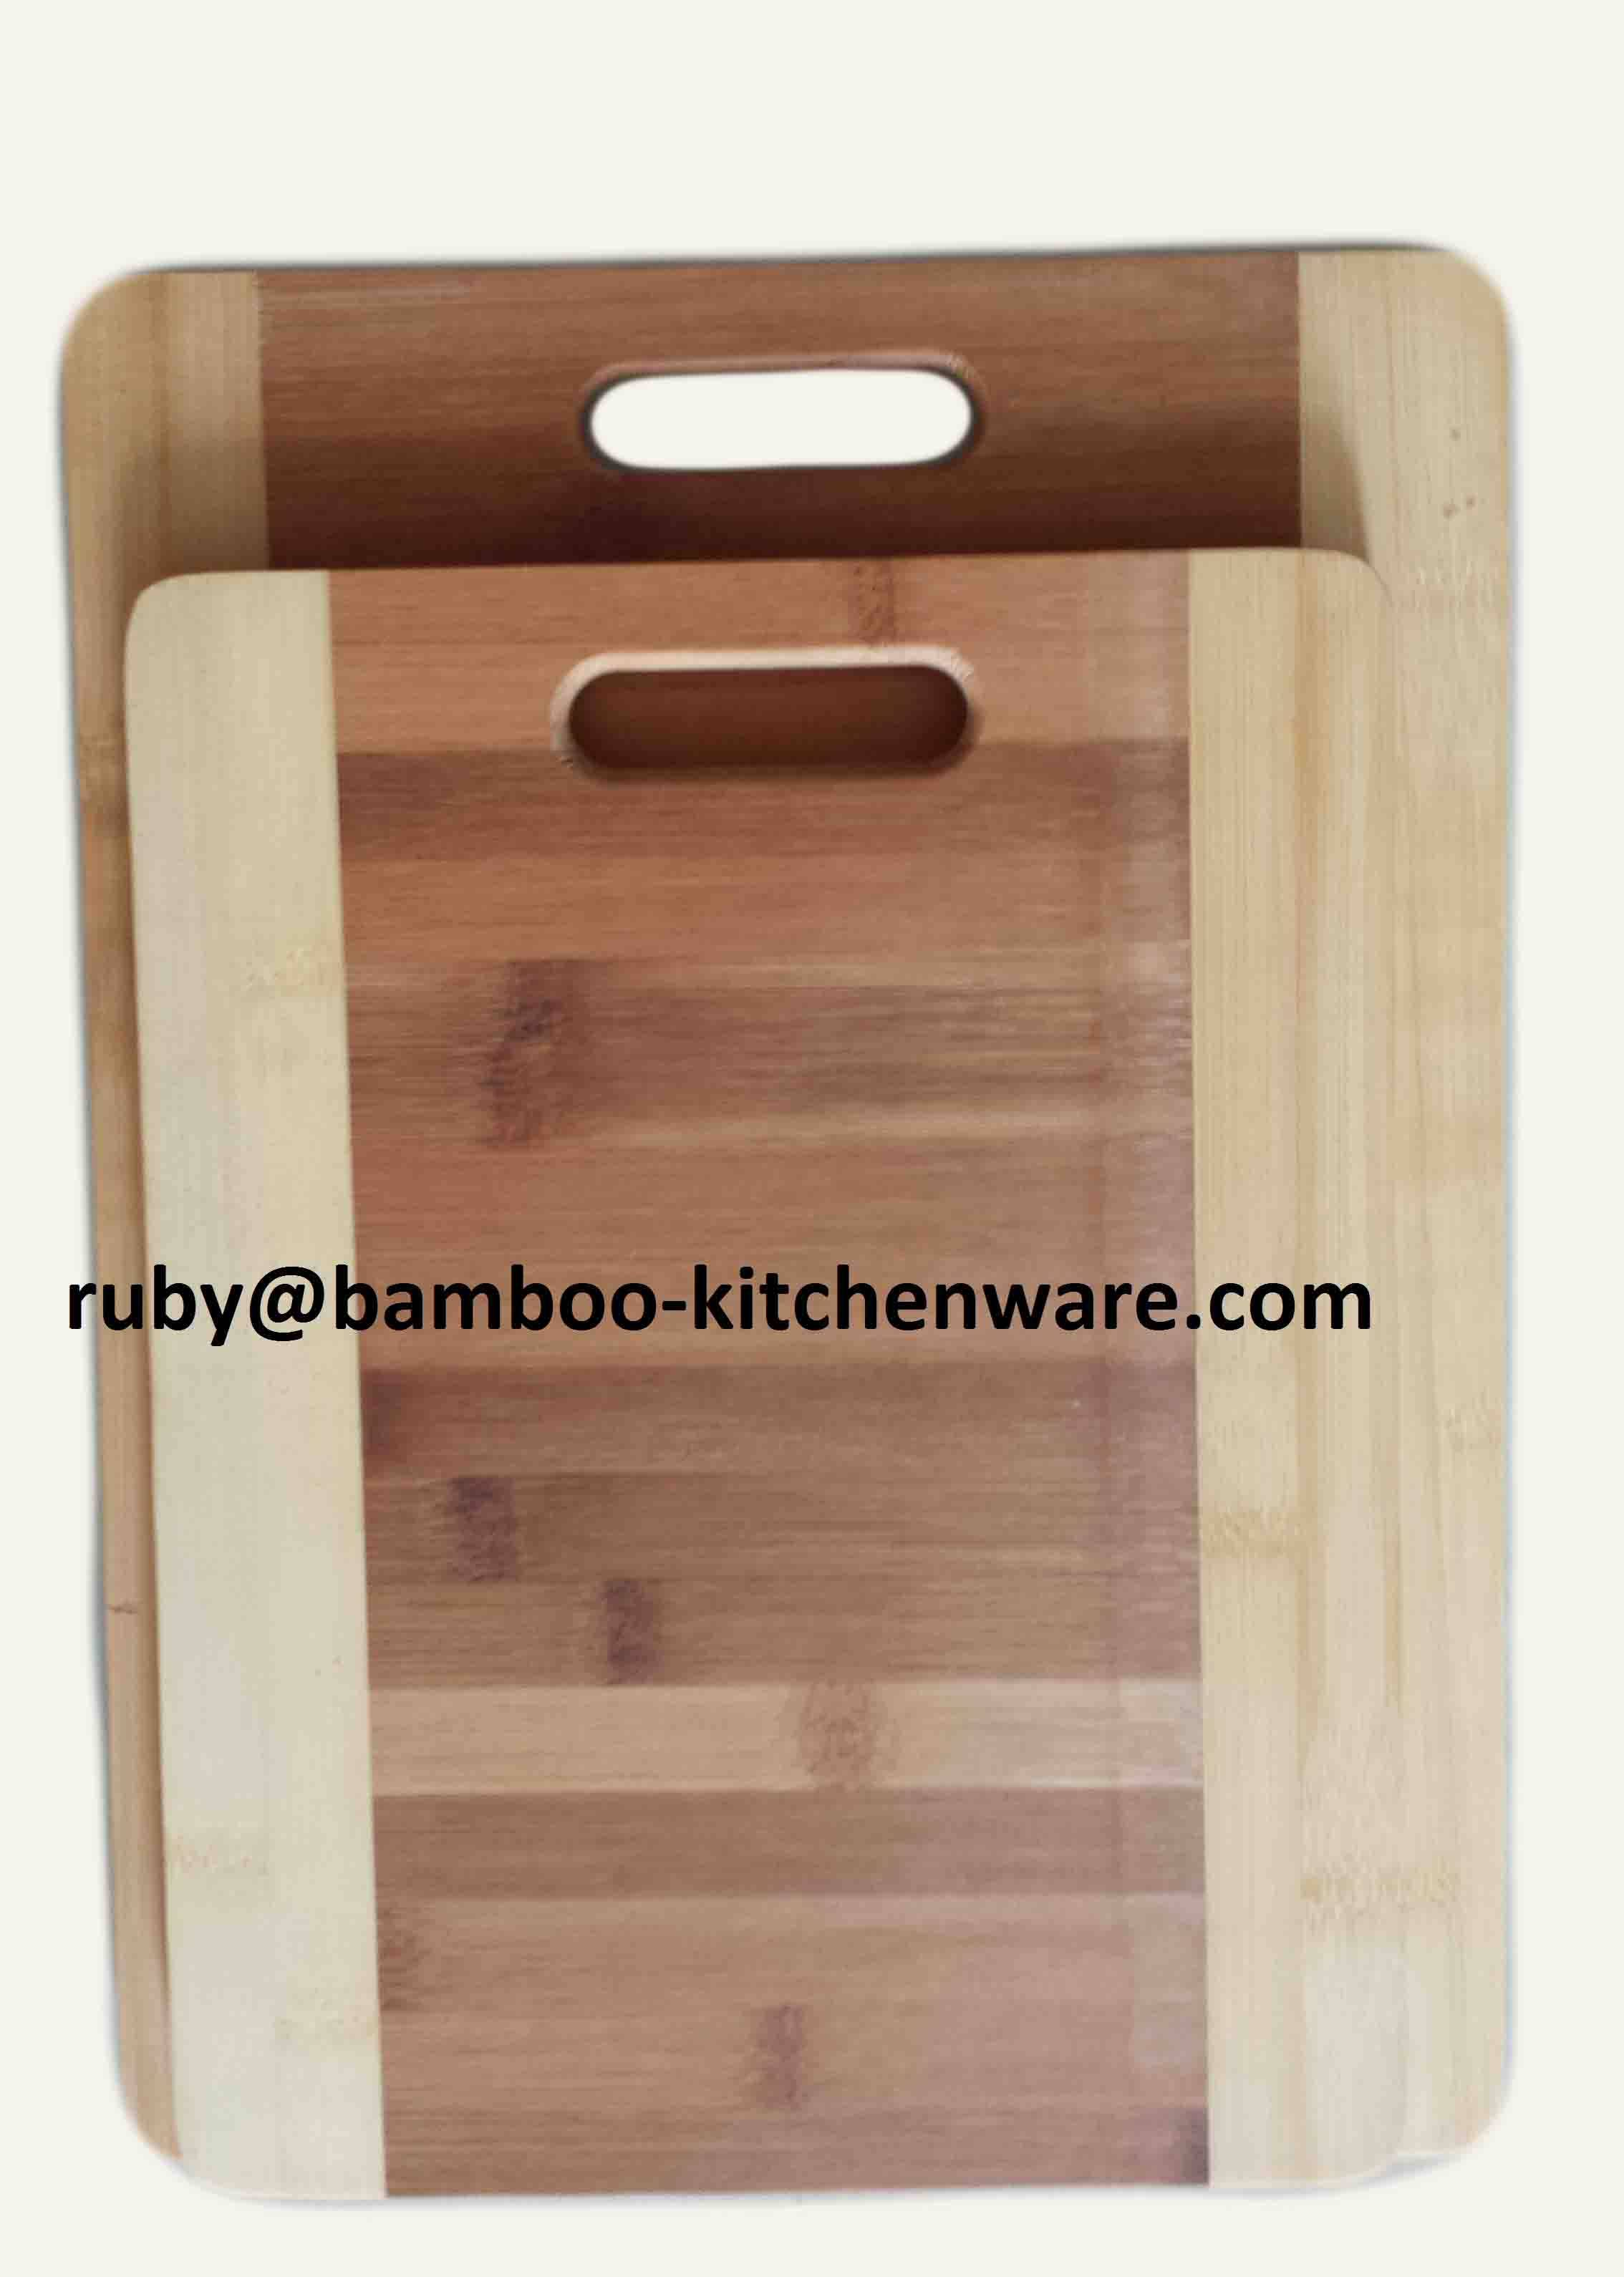 Daily Bread Engraved Cutting Board - Bamboo Wooden Wedding Cutting Board - Wedding Gift, House Warmi